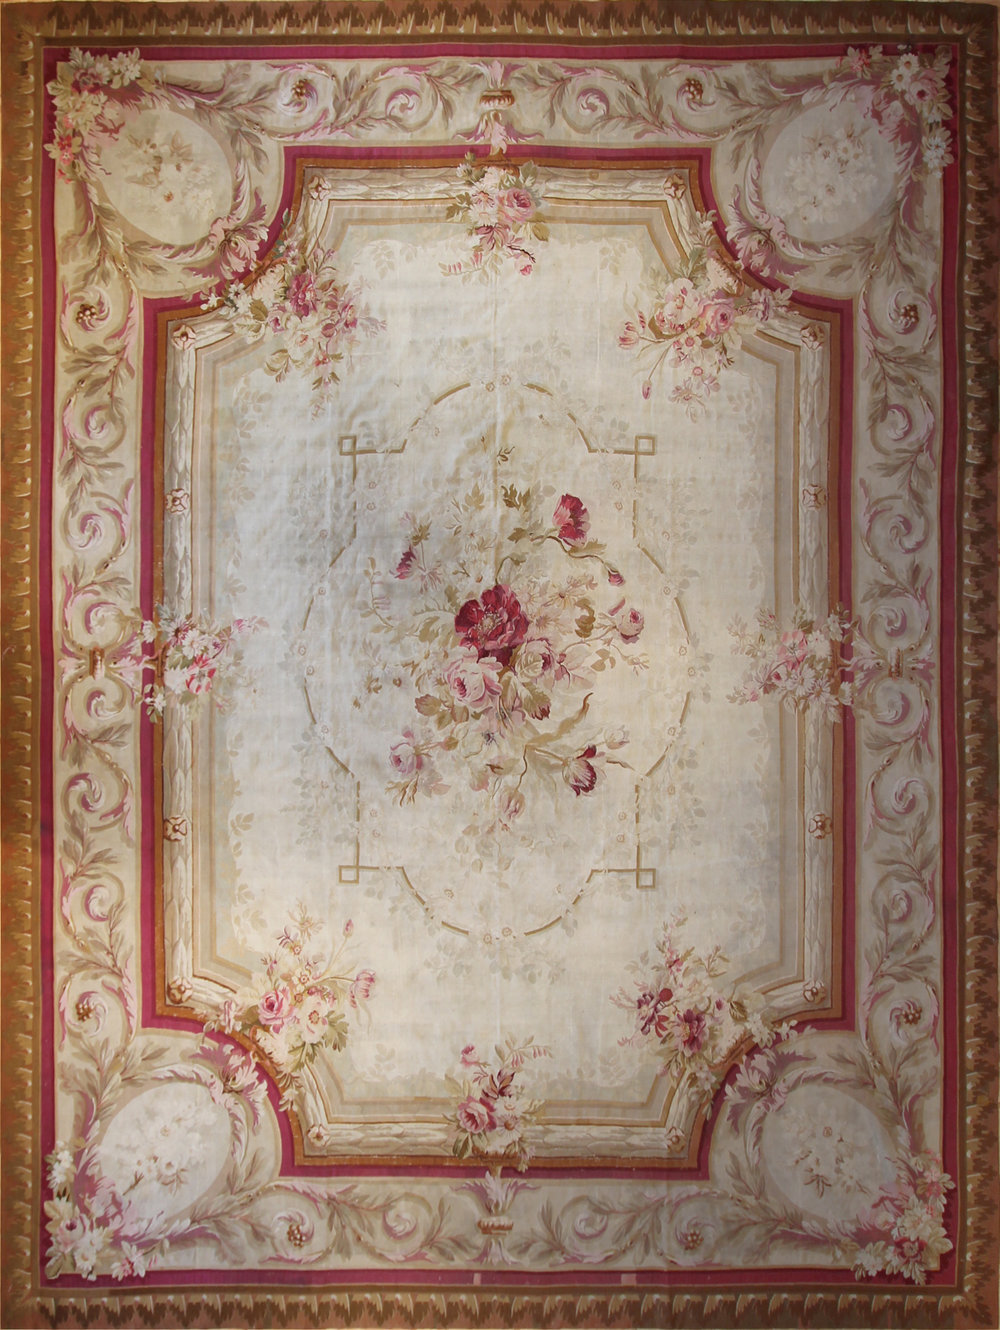 539 Aubusson Tapestry, France, circa 1870, 11'x15'